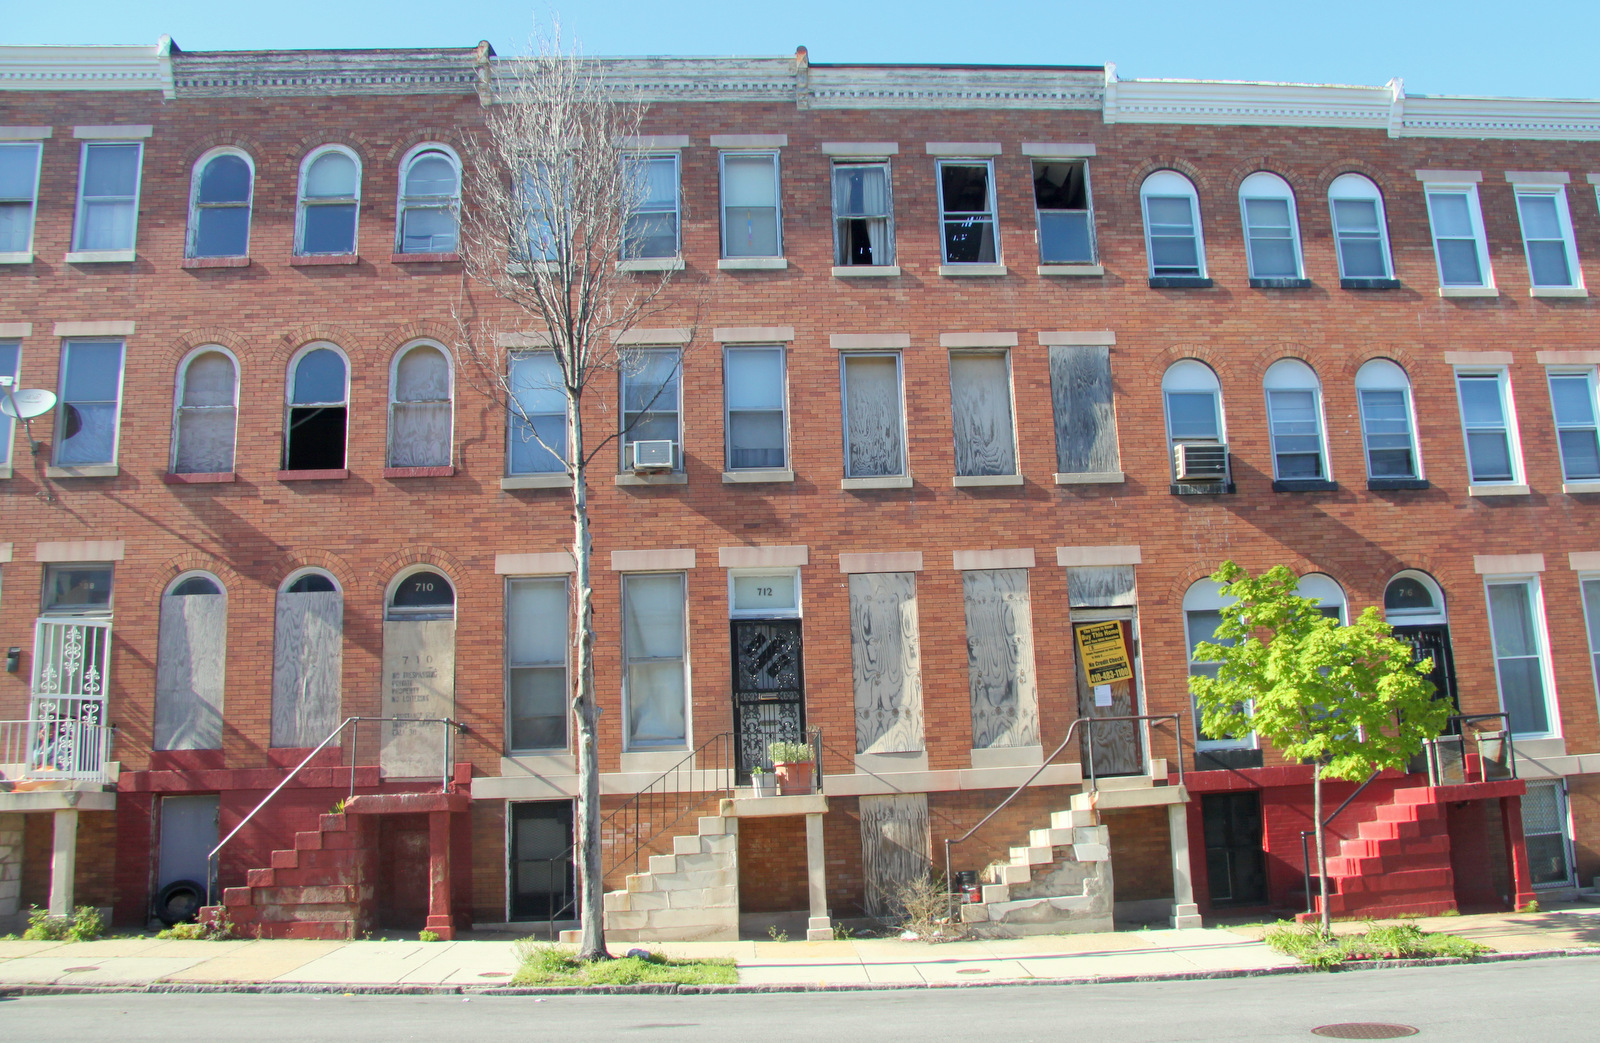 Vacant and dilapidated 714 E. 21st St. has occupied homes on either side. (Photo by Fern Shen)